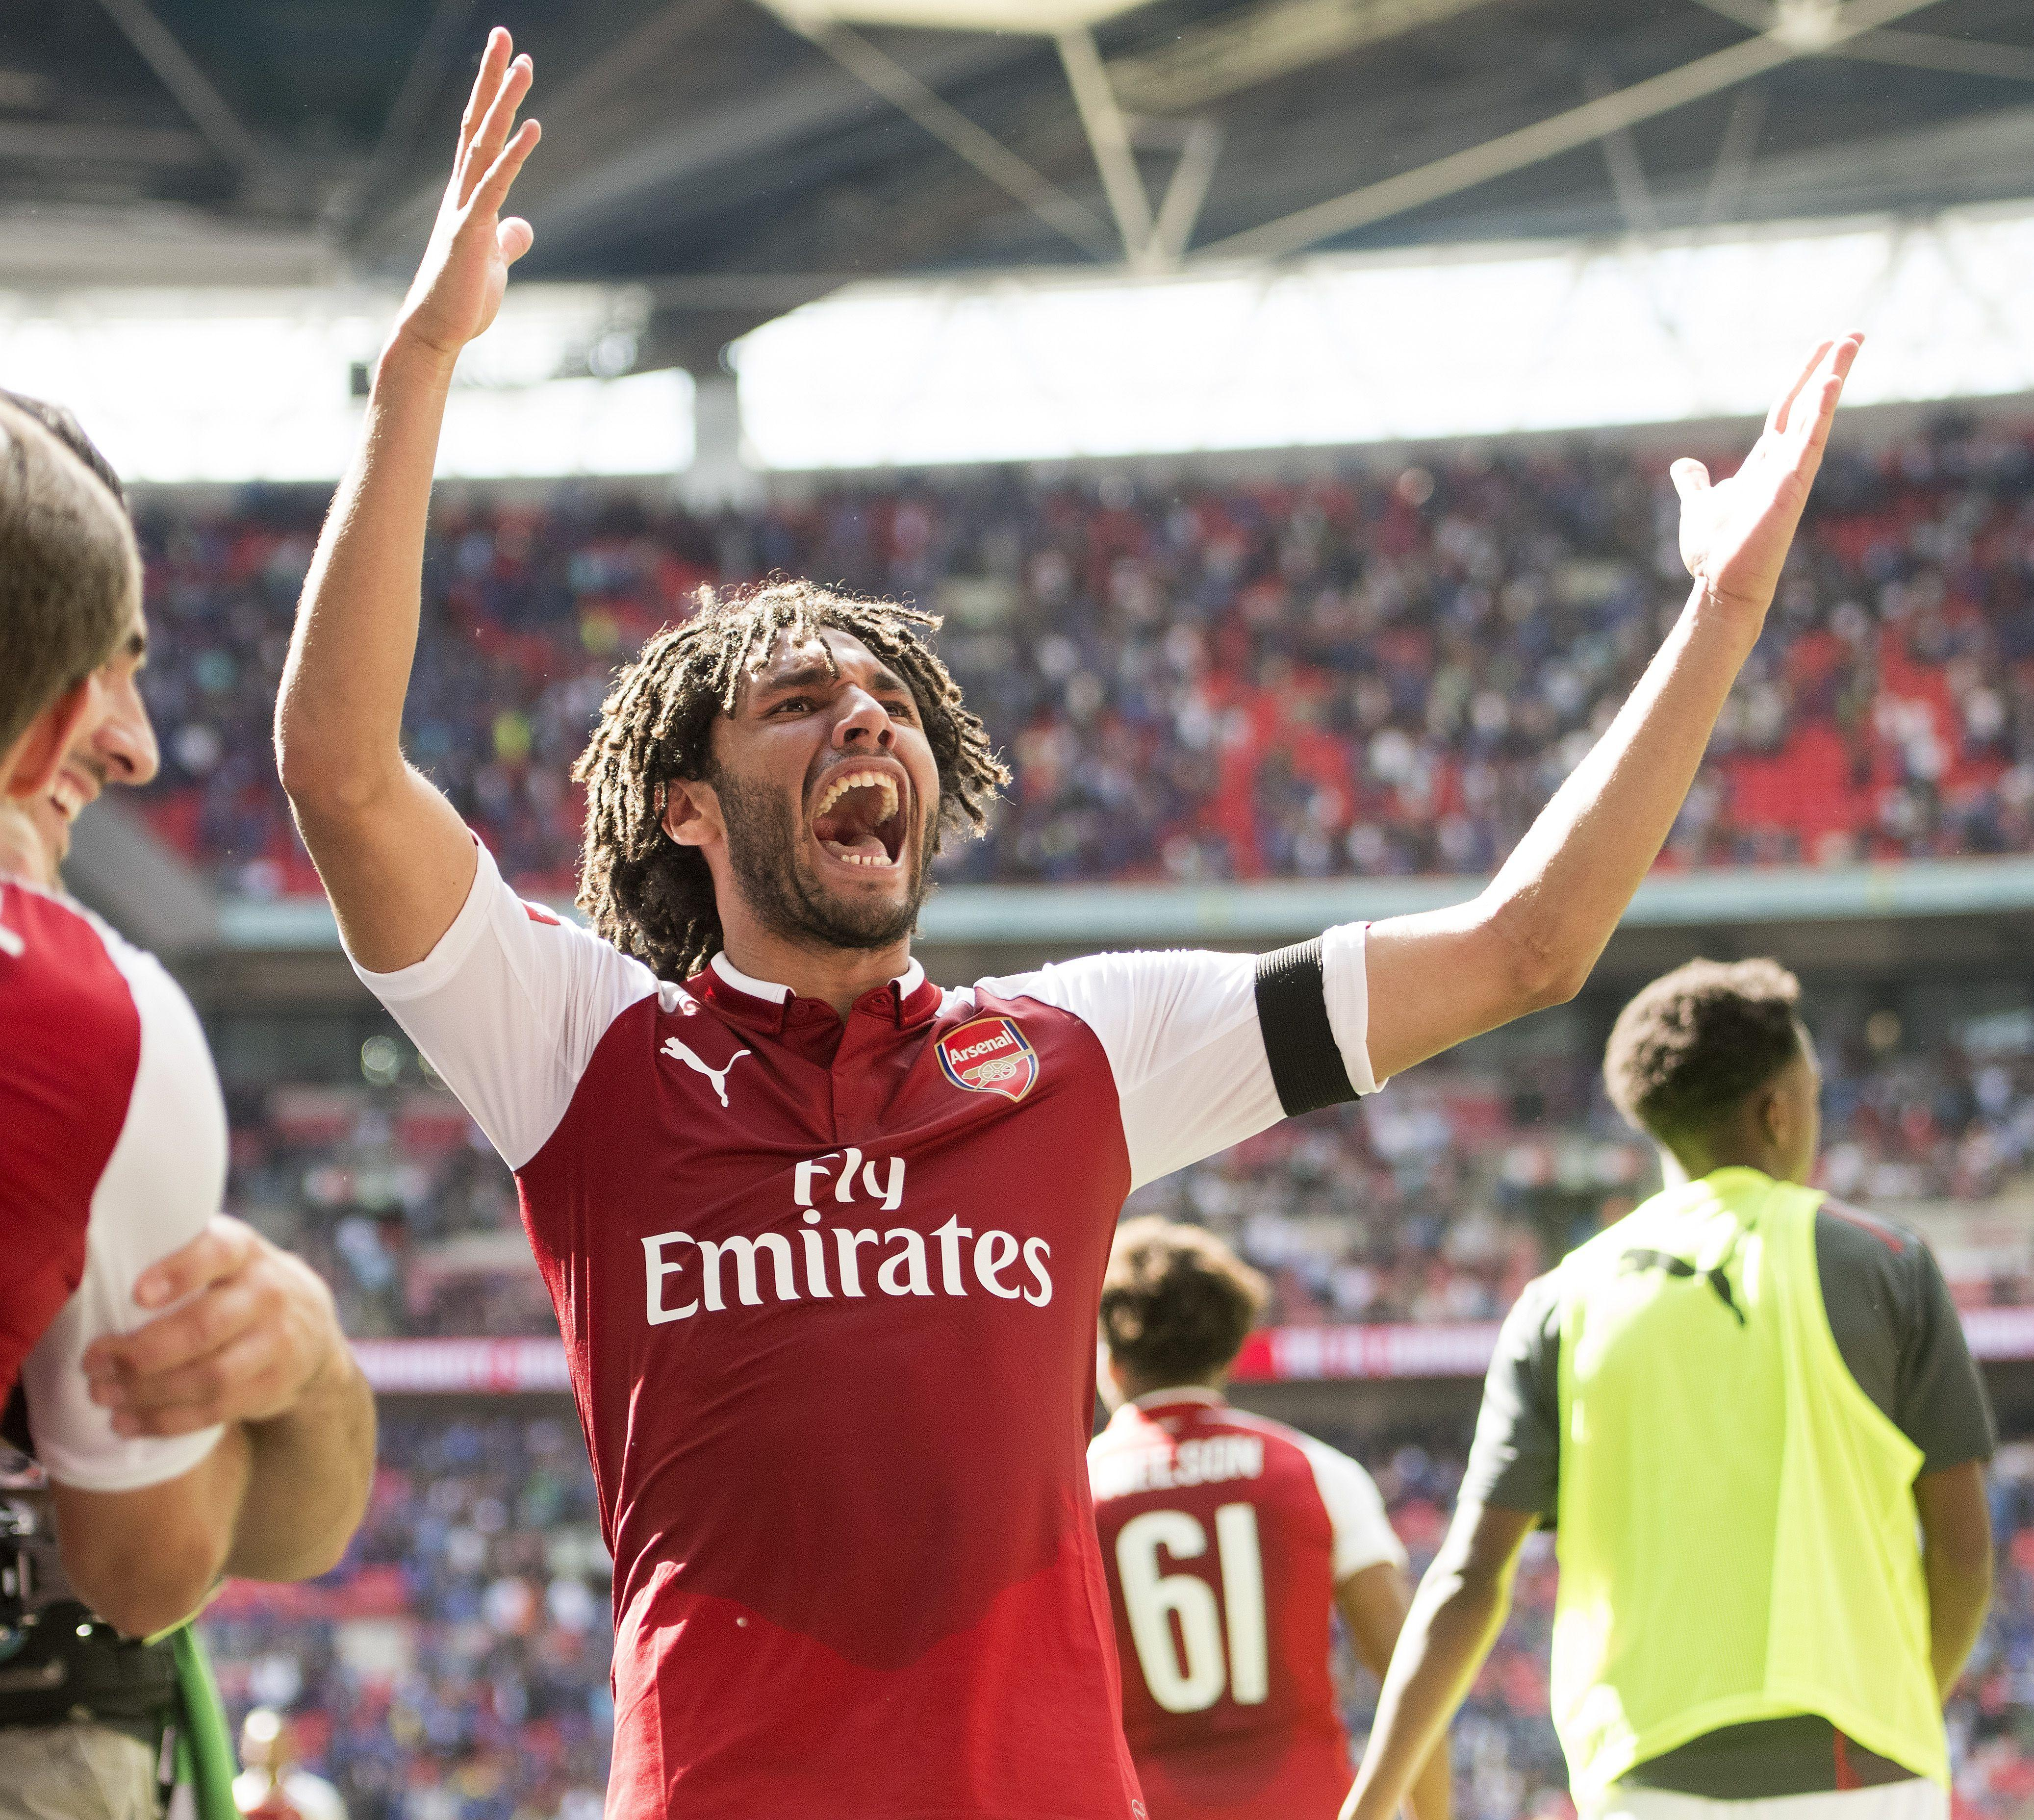 Wembley has been a happy hunting ground for Elneny and co in recent seasons